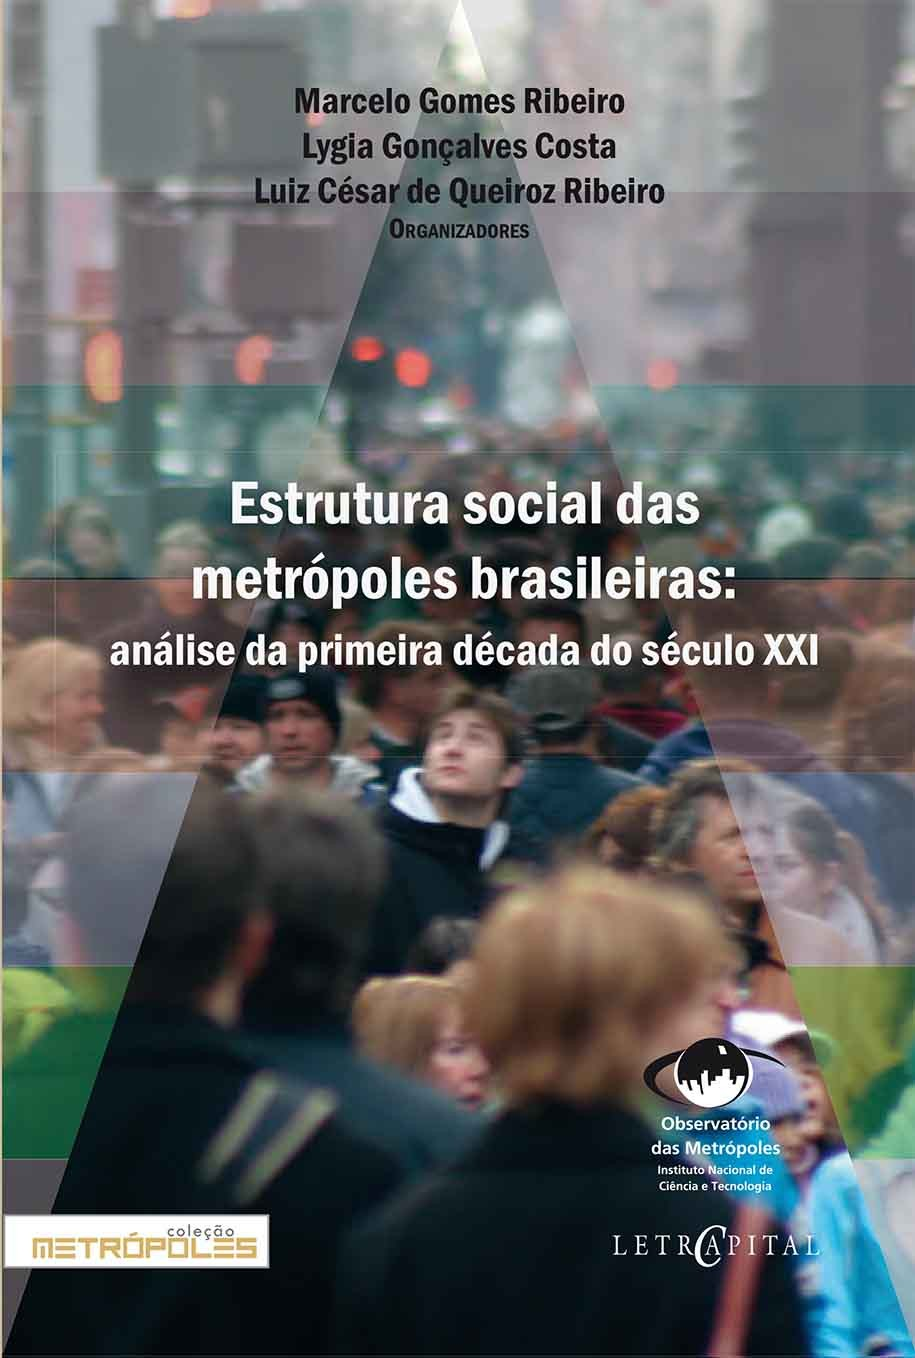 Estrutura social da metrópoles brasileiras: análise da primeira década dos séculos XXI